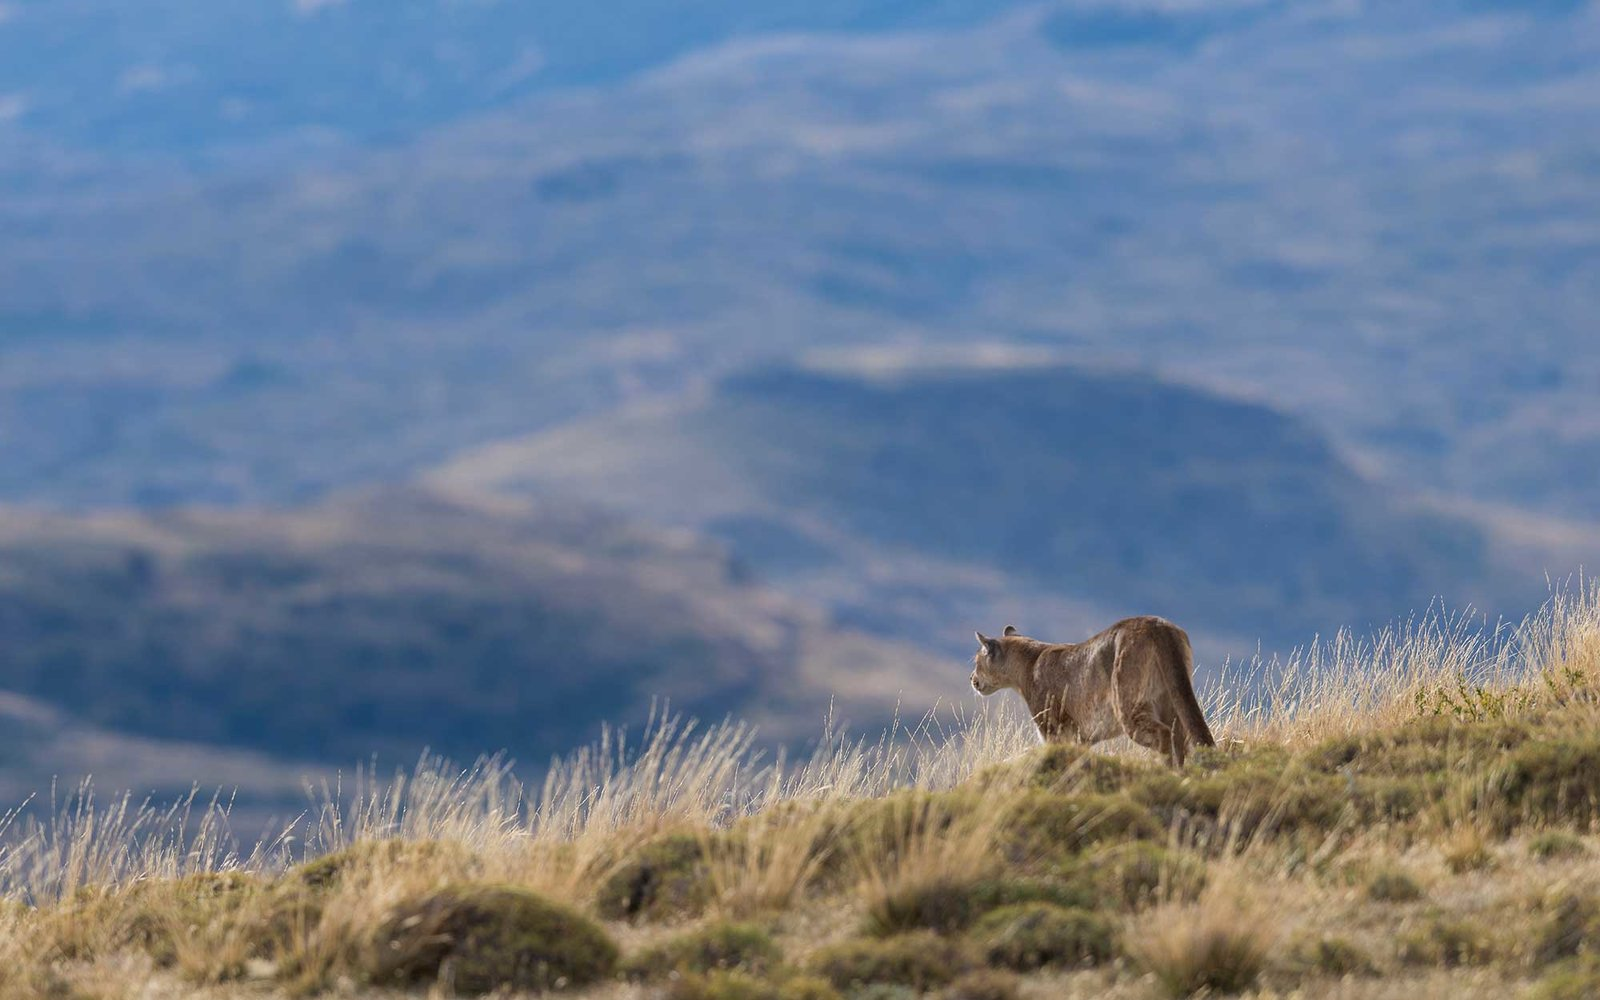 Wild puma stalking guanaco's in Torres del Paine National Park, Chile.